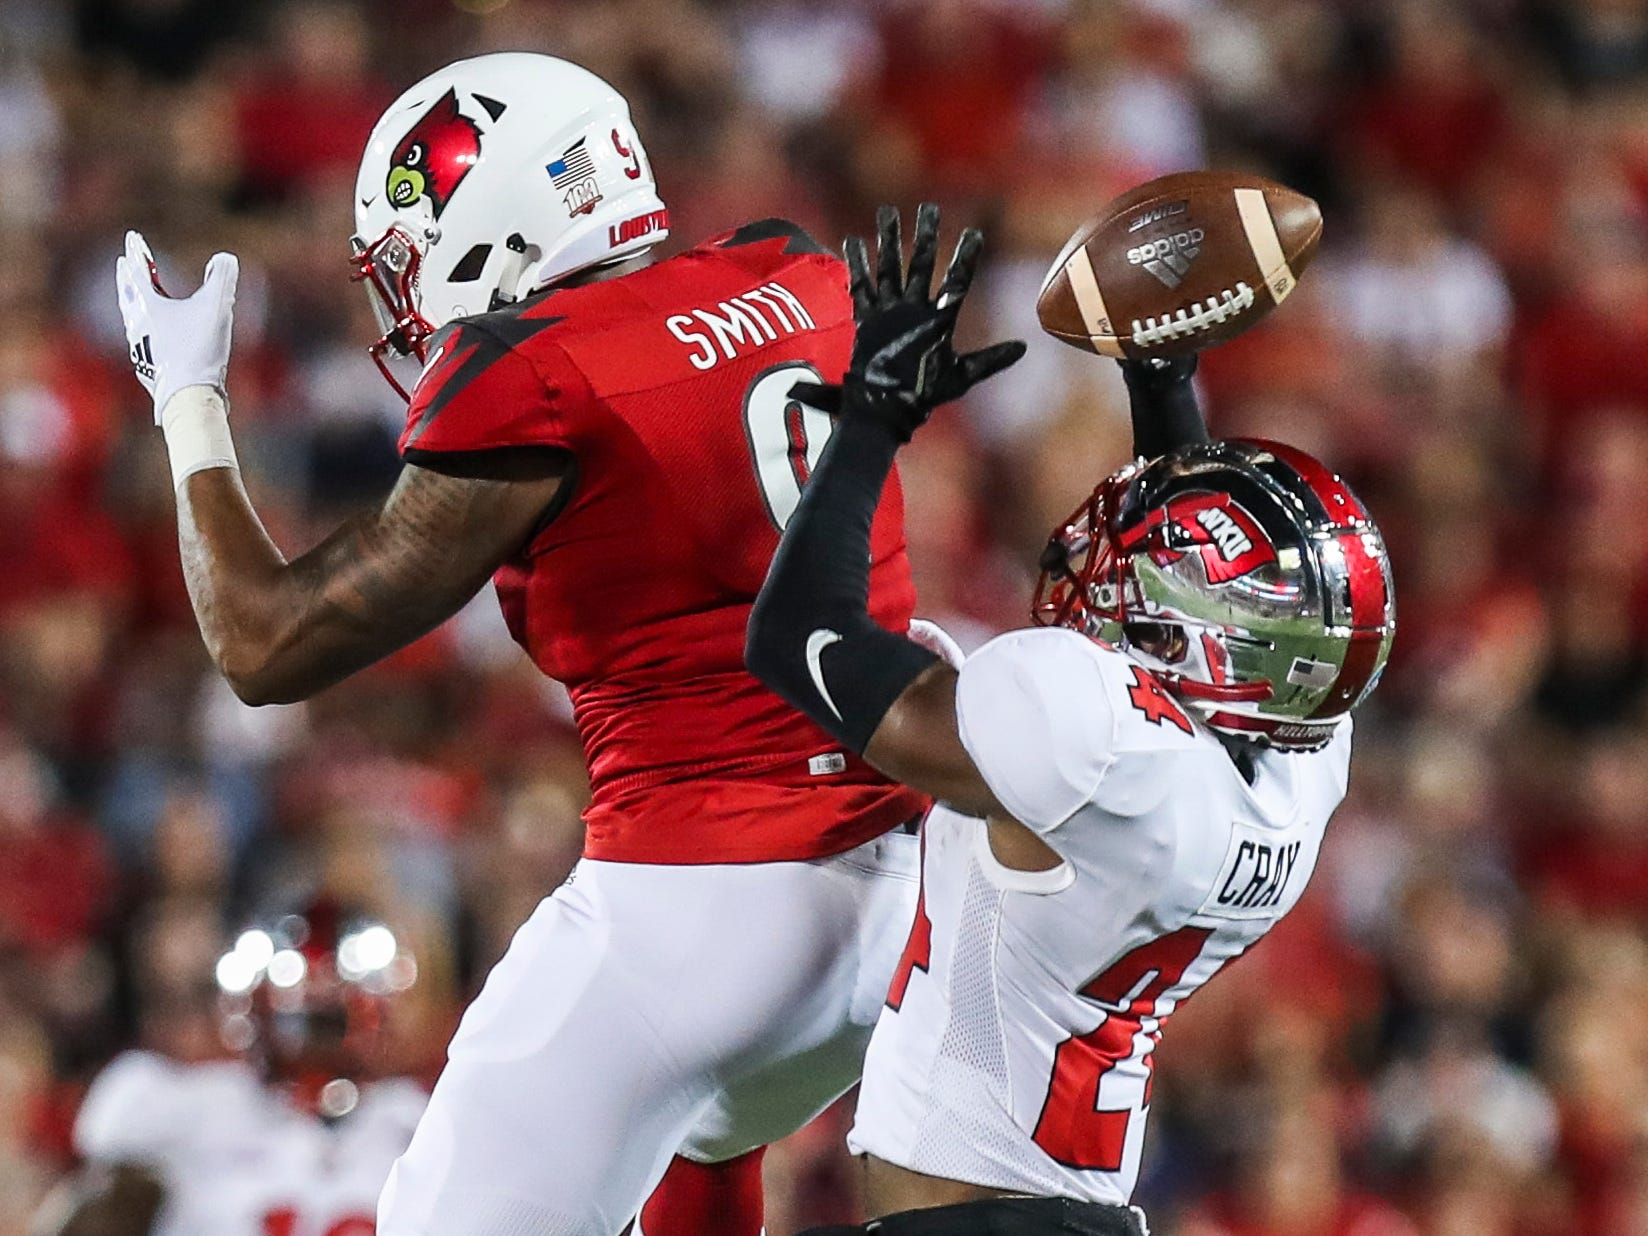 Western Kentucky's Deandre Farris almost intercepted this pass meant for Louisville's Jaylen Smith as the Toppers went up 14-0 on the Cardinals Saturday, Sept. 15, 2018.